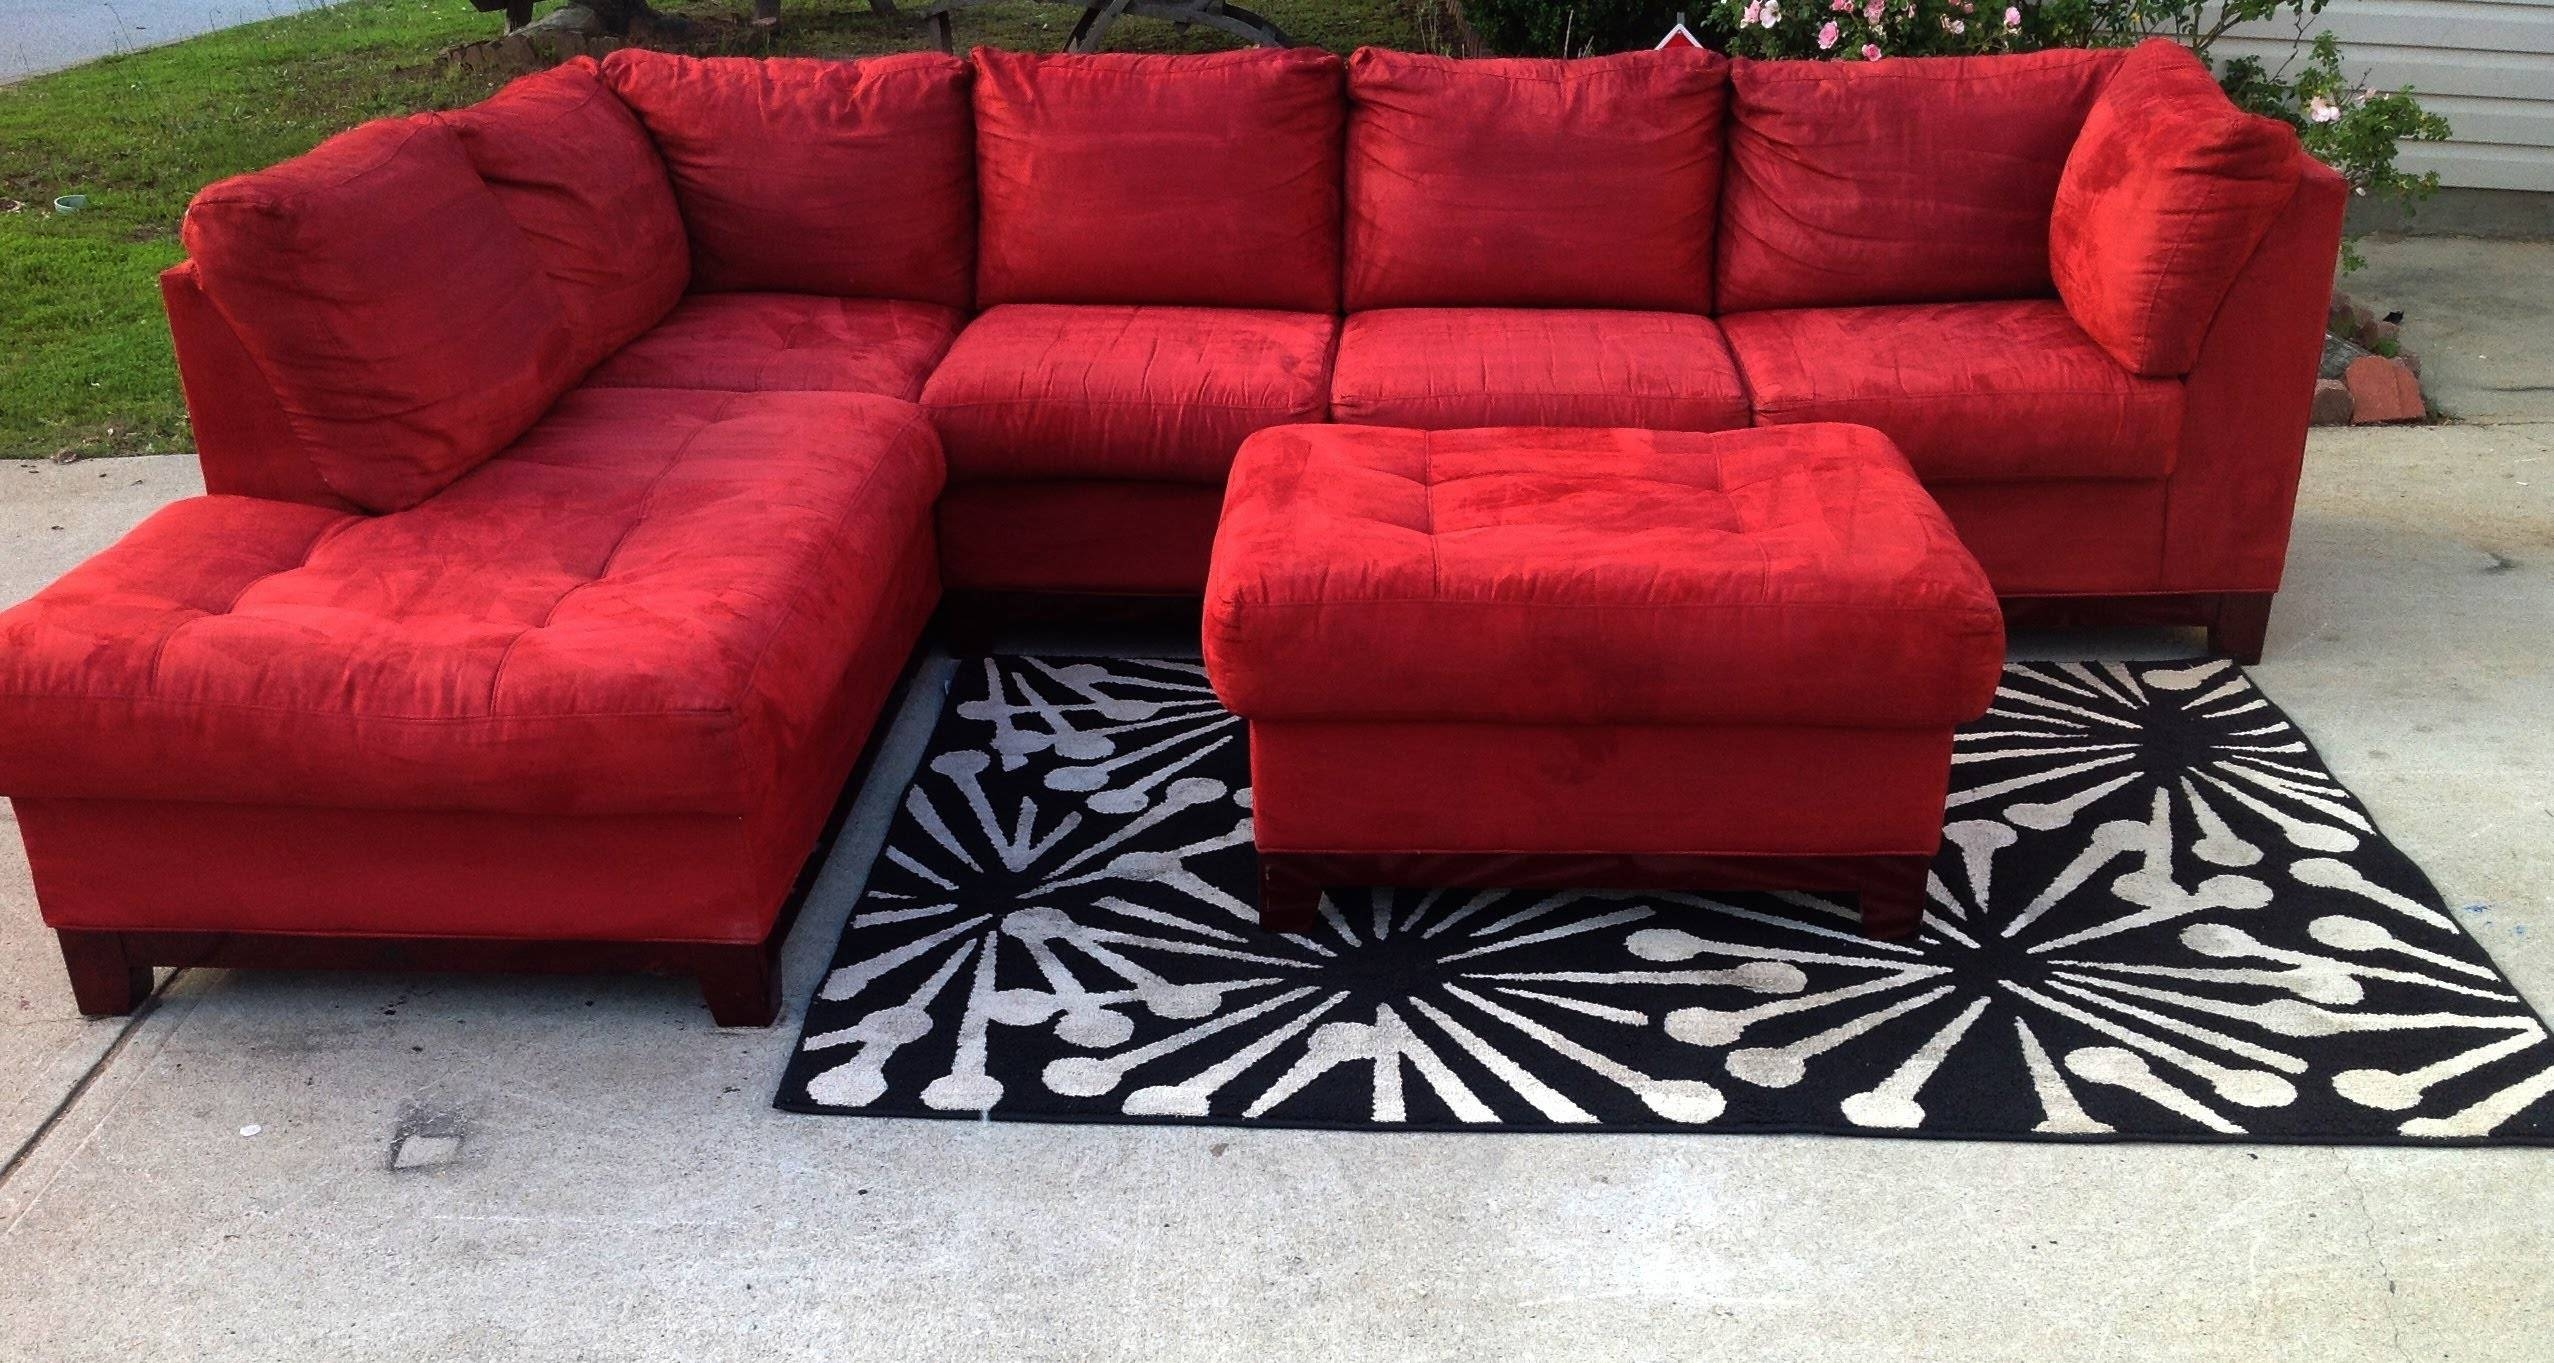 Red Cindy Crawford Stlye Sectional 475 - Youtube pertaining to Cindy Crawford Sectional Sofas (Image 13 of 15)